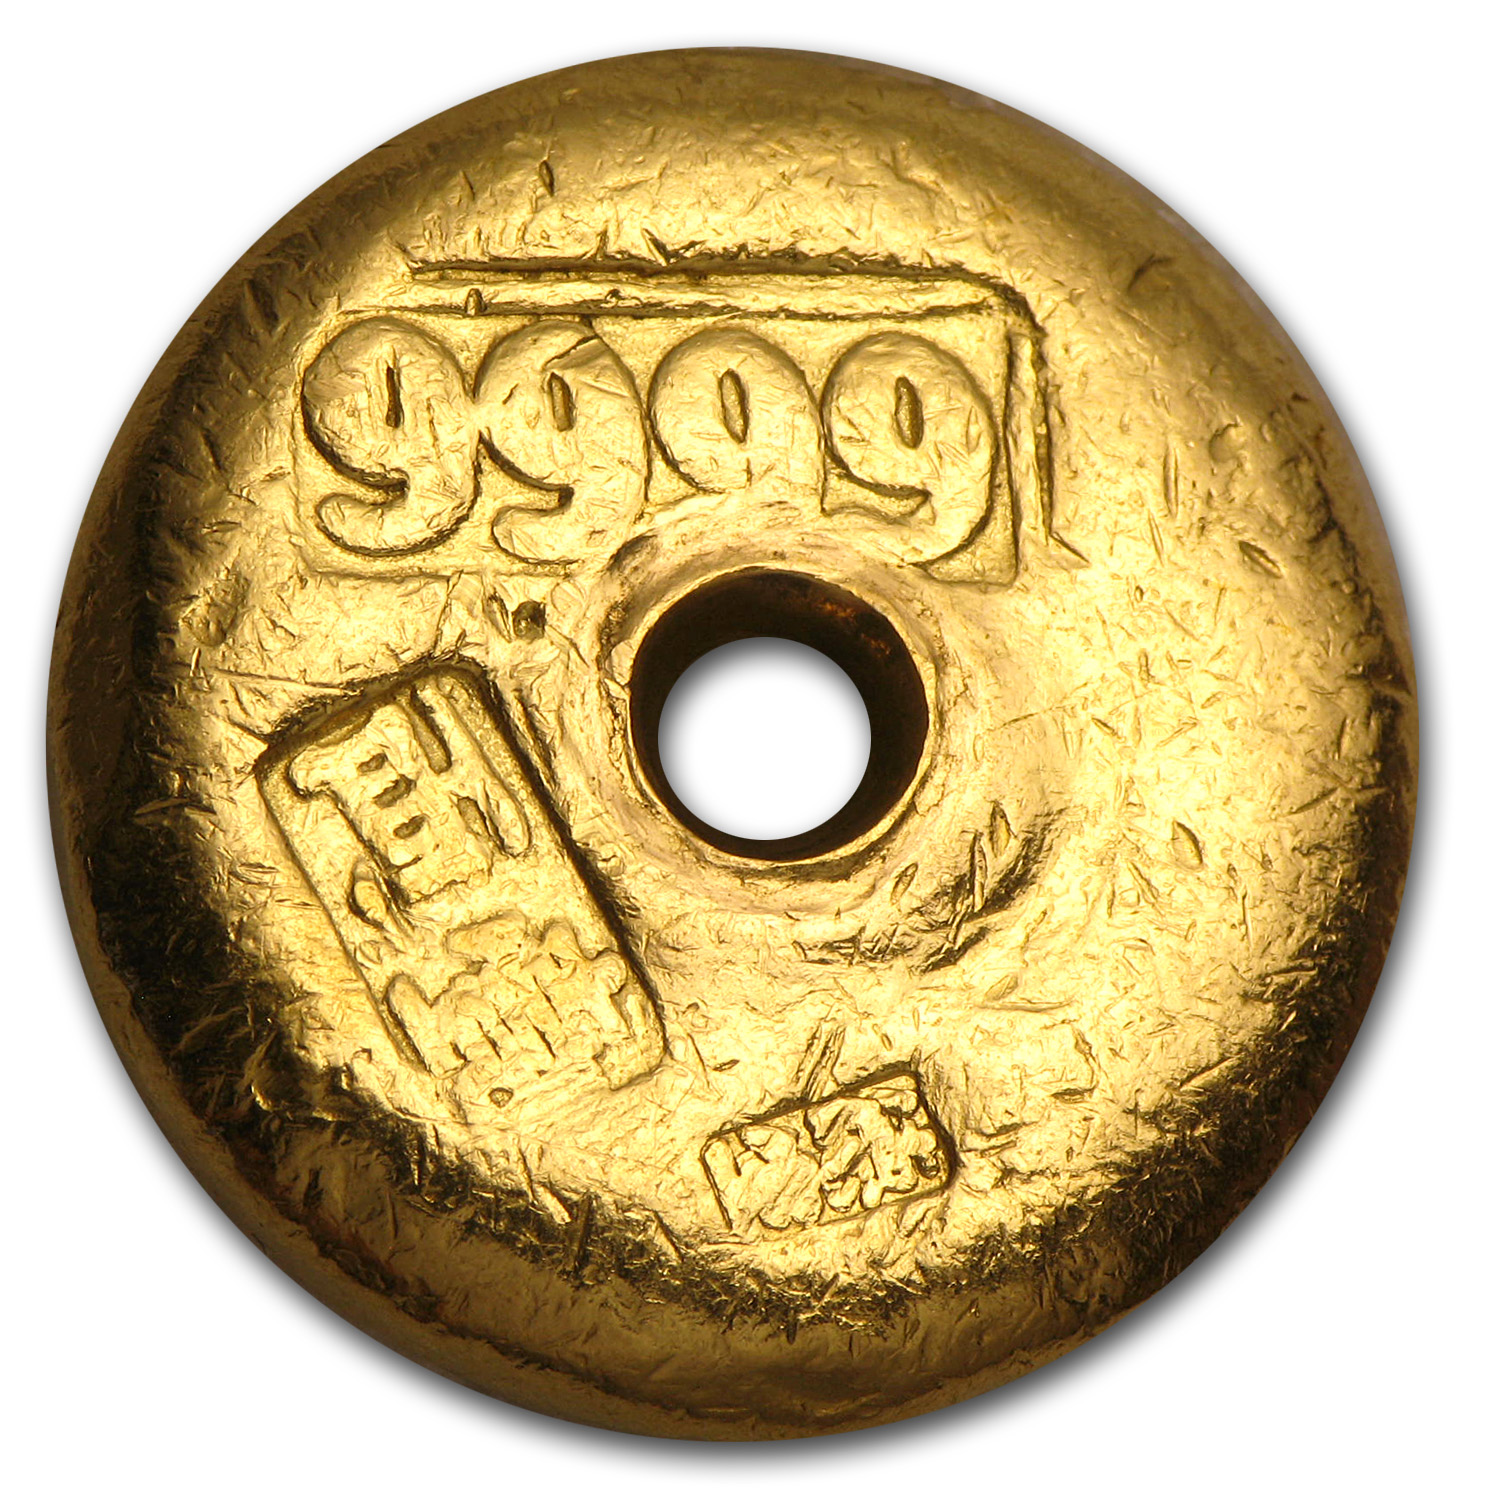 1 Tael Gold Round - Chinese Button (Type 1, 1.2057 oz)